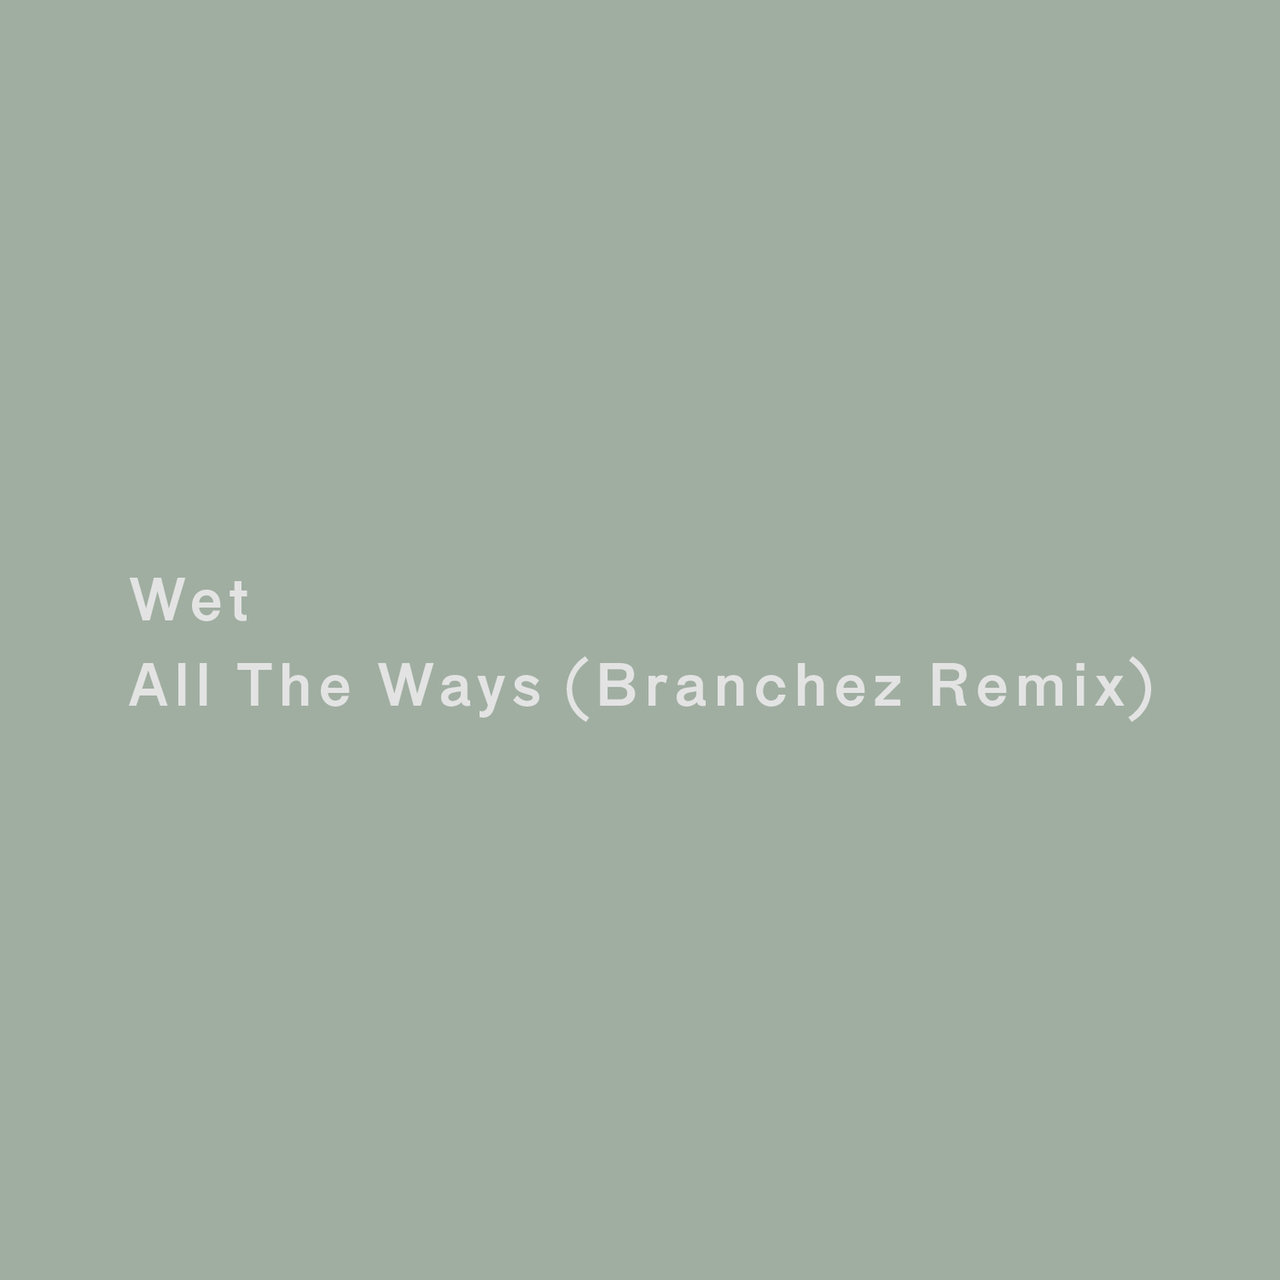 All the Ways (Branchez Remix)